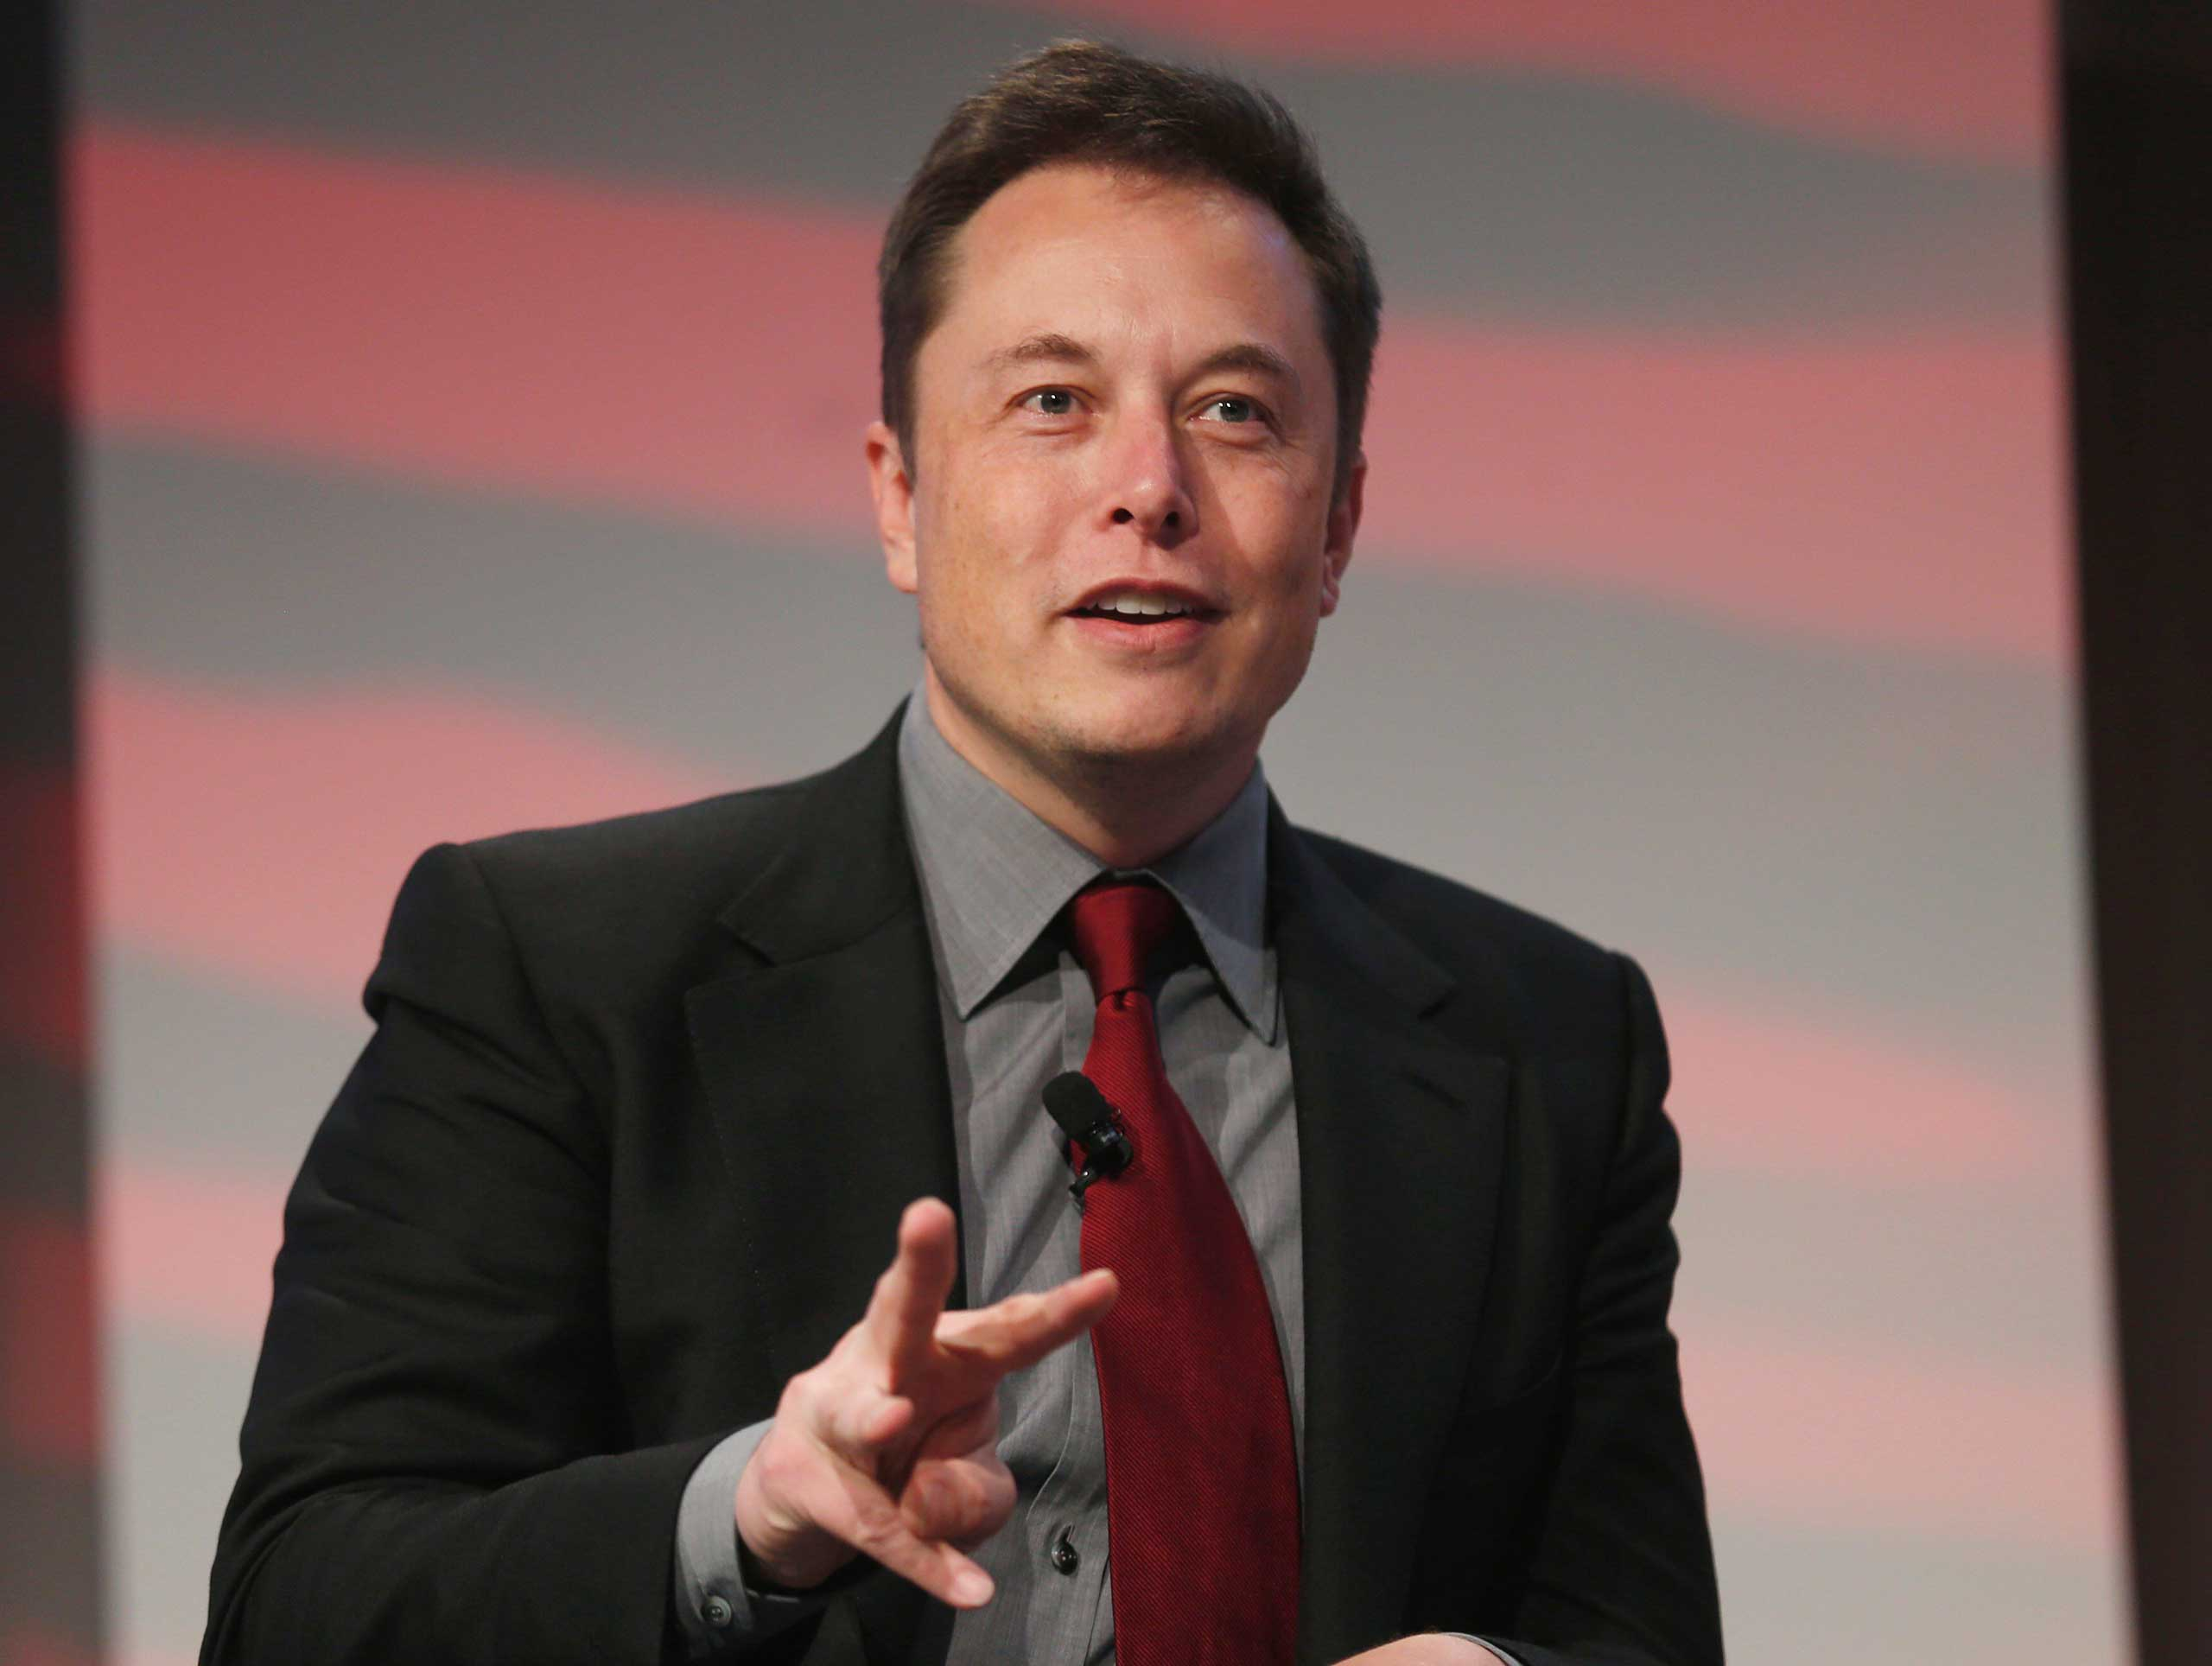 Tesla Motors CEO Elon Musk talks at the Automotive World News Congress at the Renaissance Center in Detroit on Jan. 13, 2015.